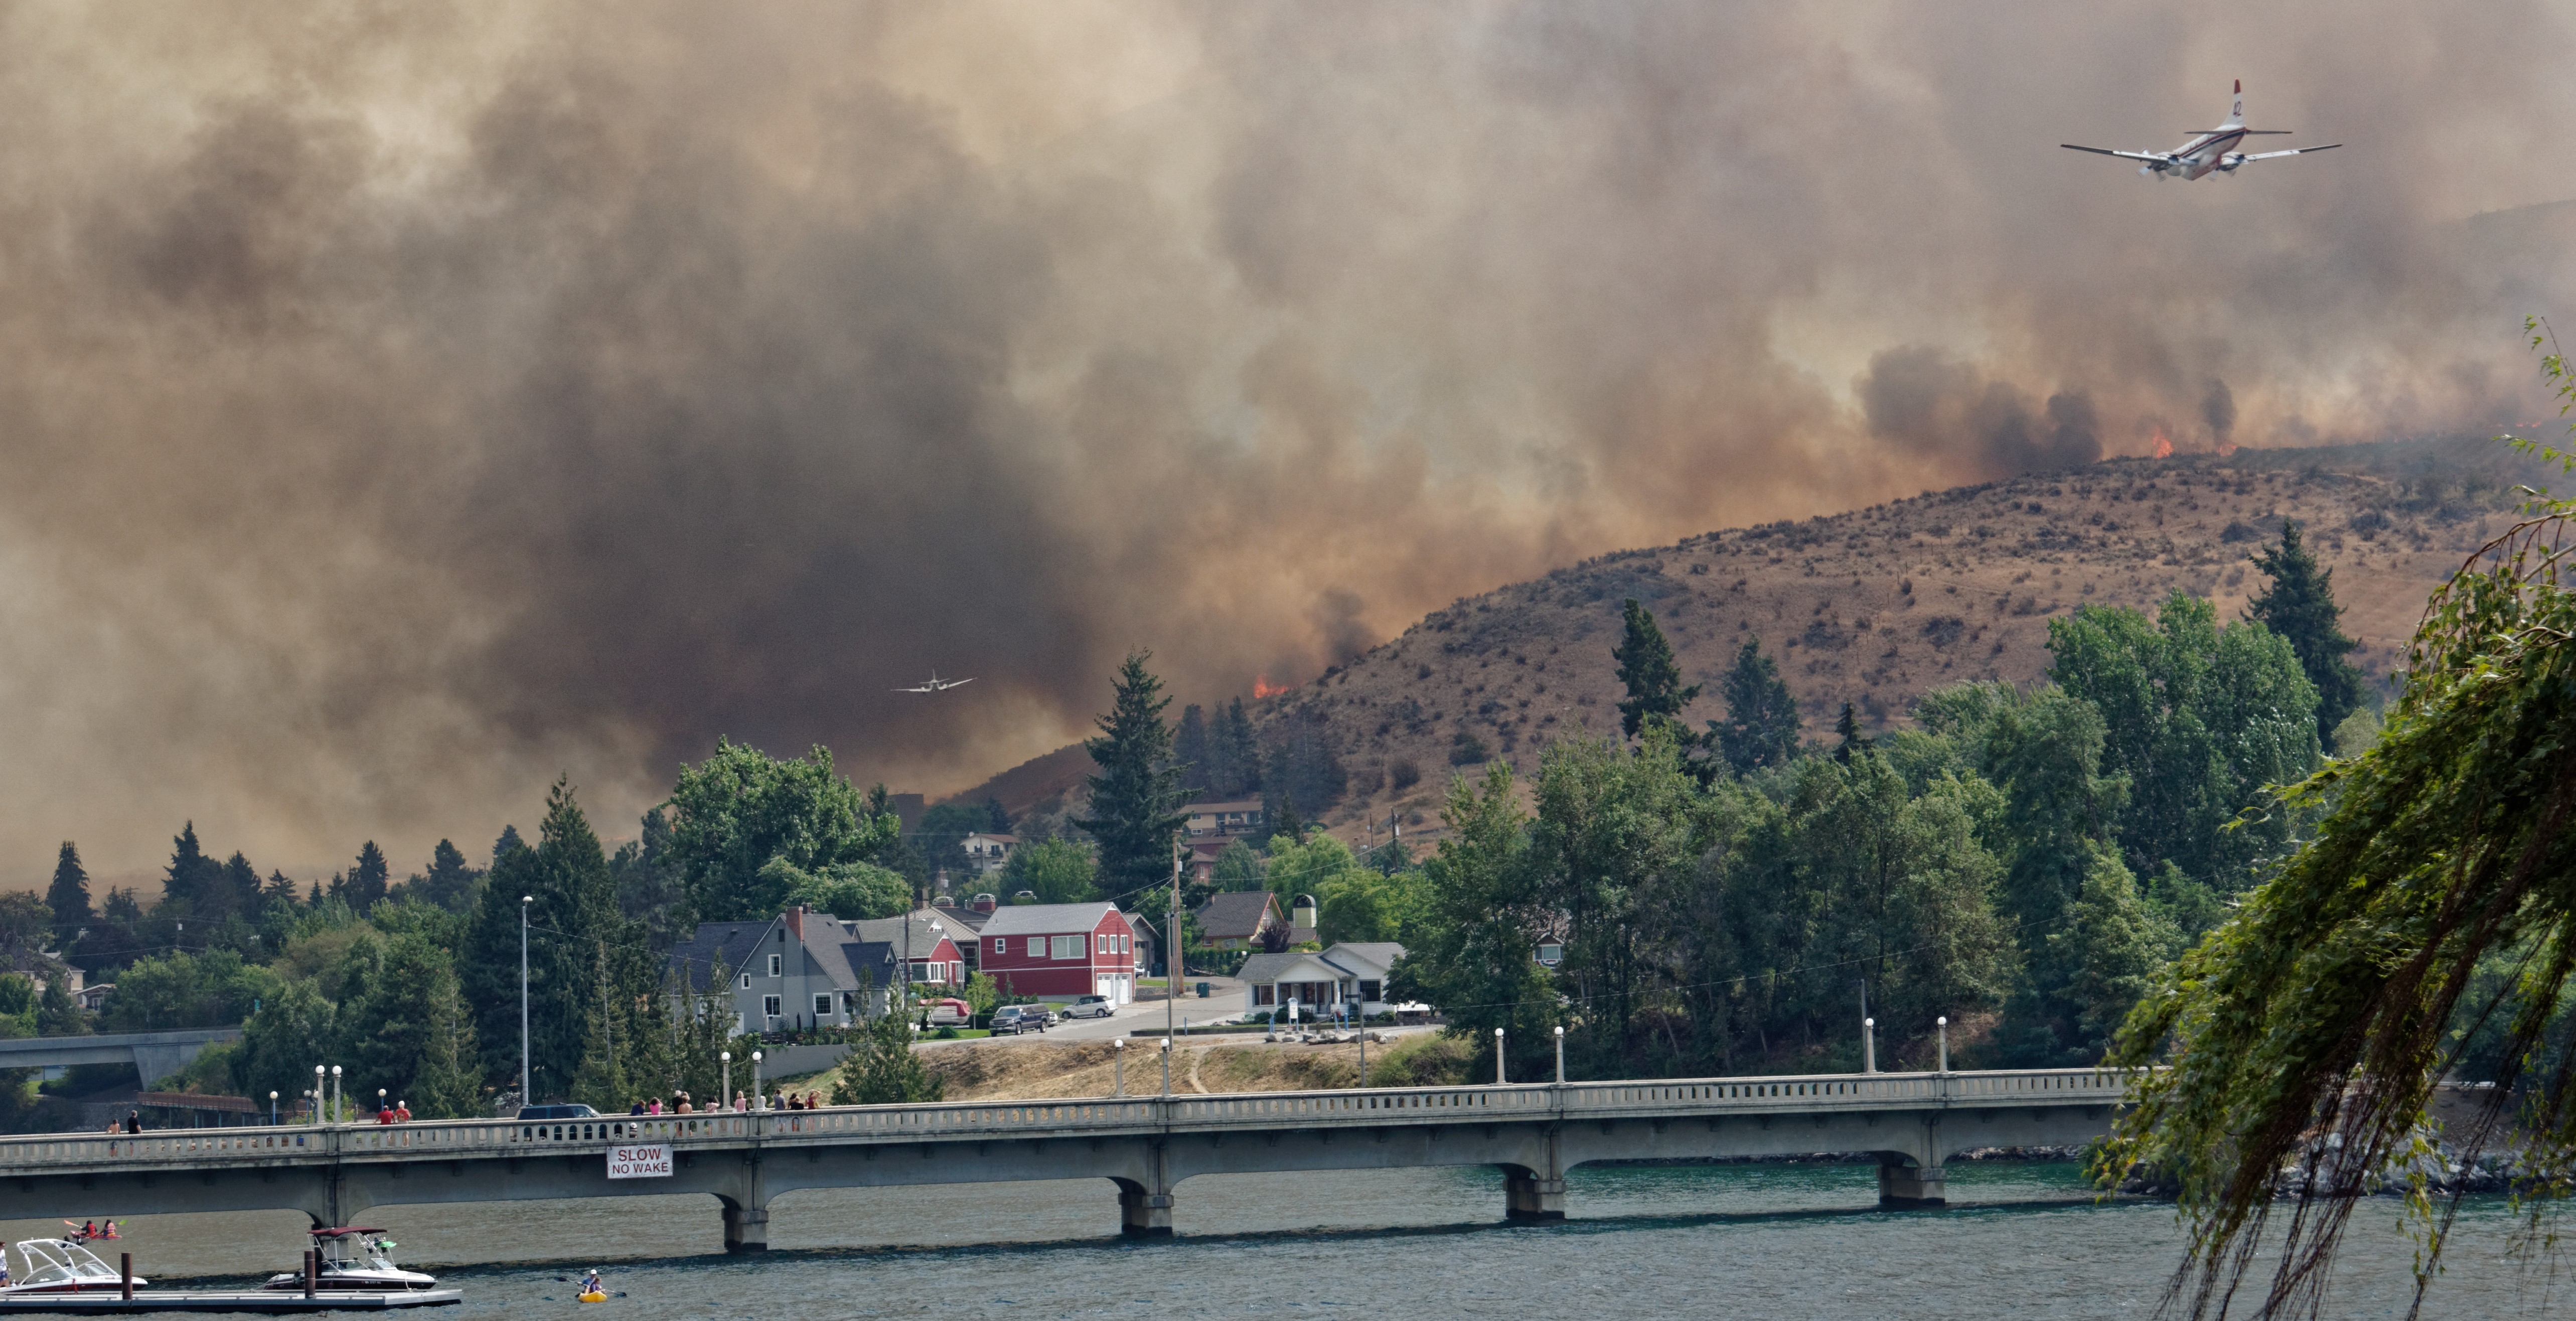 Chelan Complex Fire damage cropped